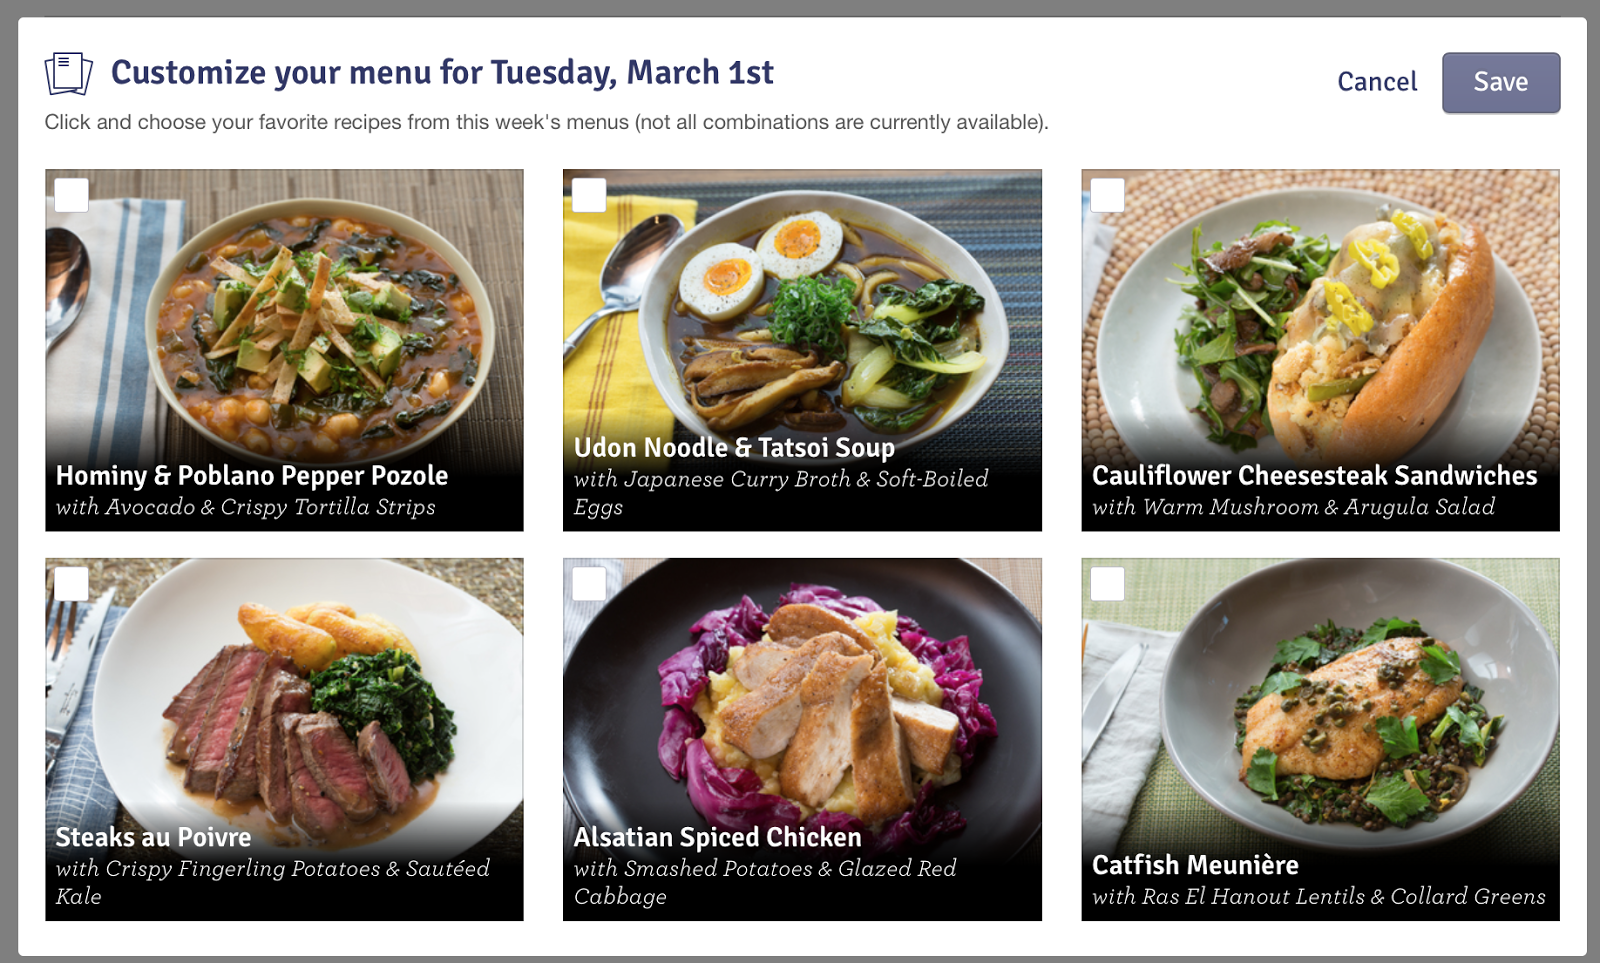 Blue apron udon catfish - If You Are Not A Vegetarian You Can See You Have More Meal Options To Choose From However You Can T Do Every Single Possible Combination Some